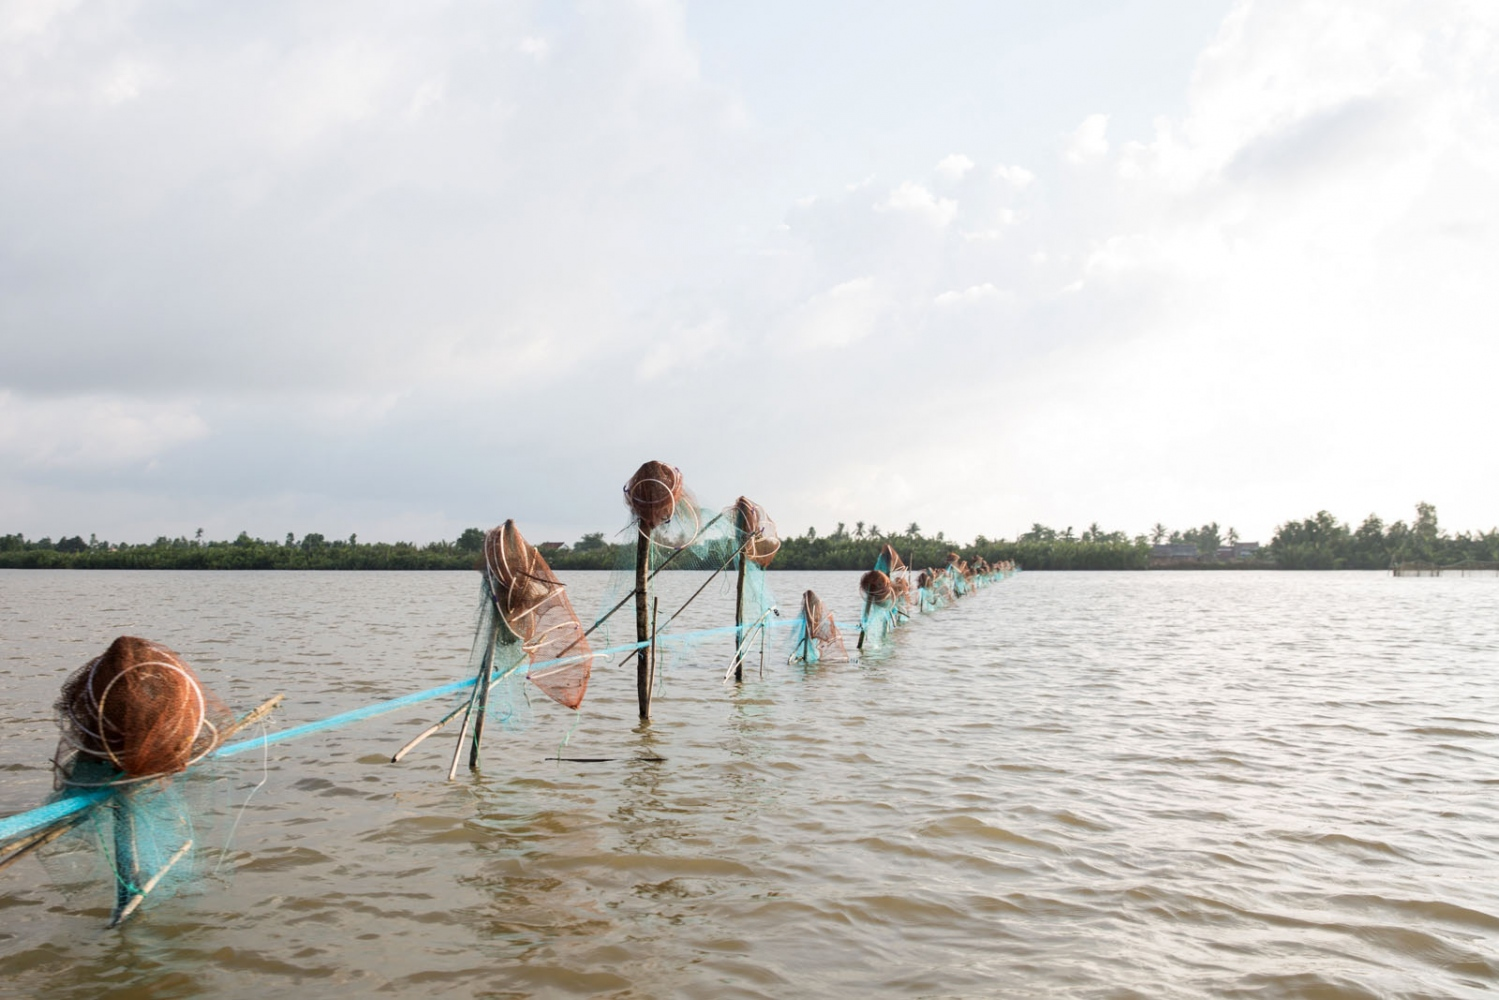 Fishing nets cut across the middle of Thi Tuong Lagoon in Ca Mau Province. 2km wide and over 10km long it is the largest natural lagoon in the Delta and an important for the many fishermen who rely on it.